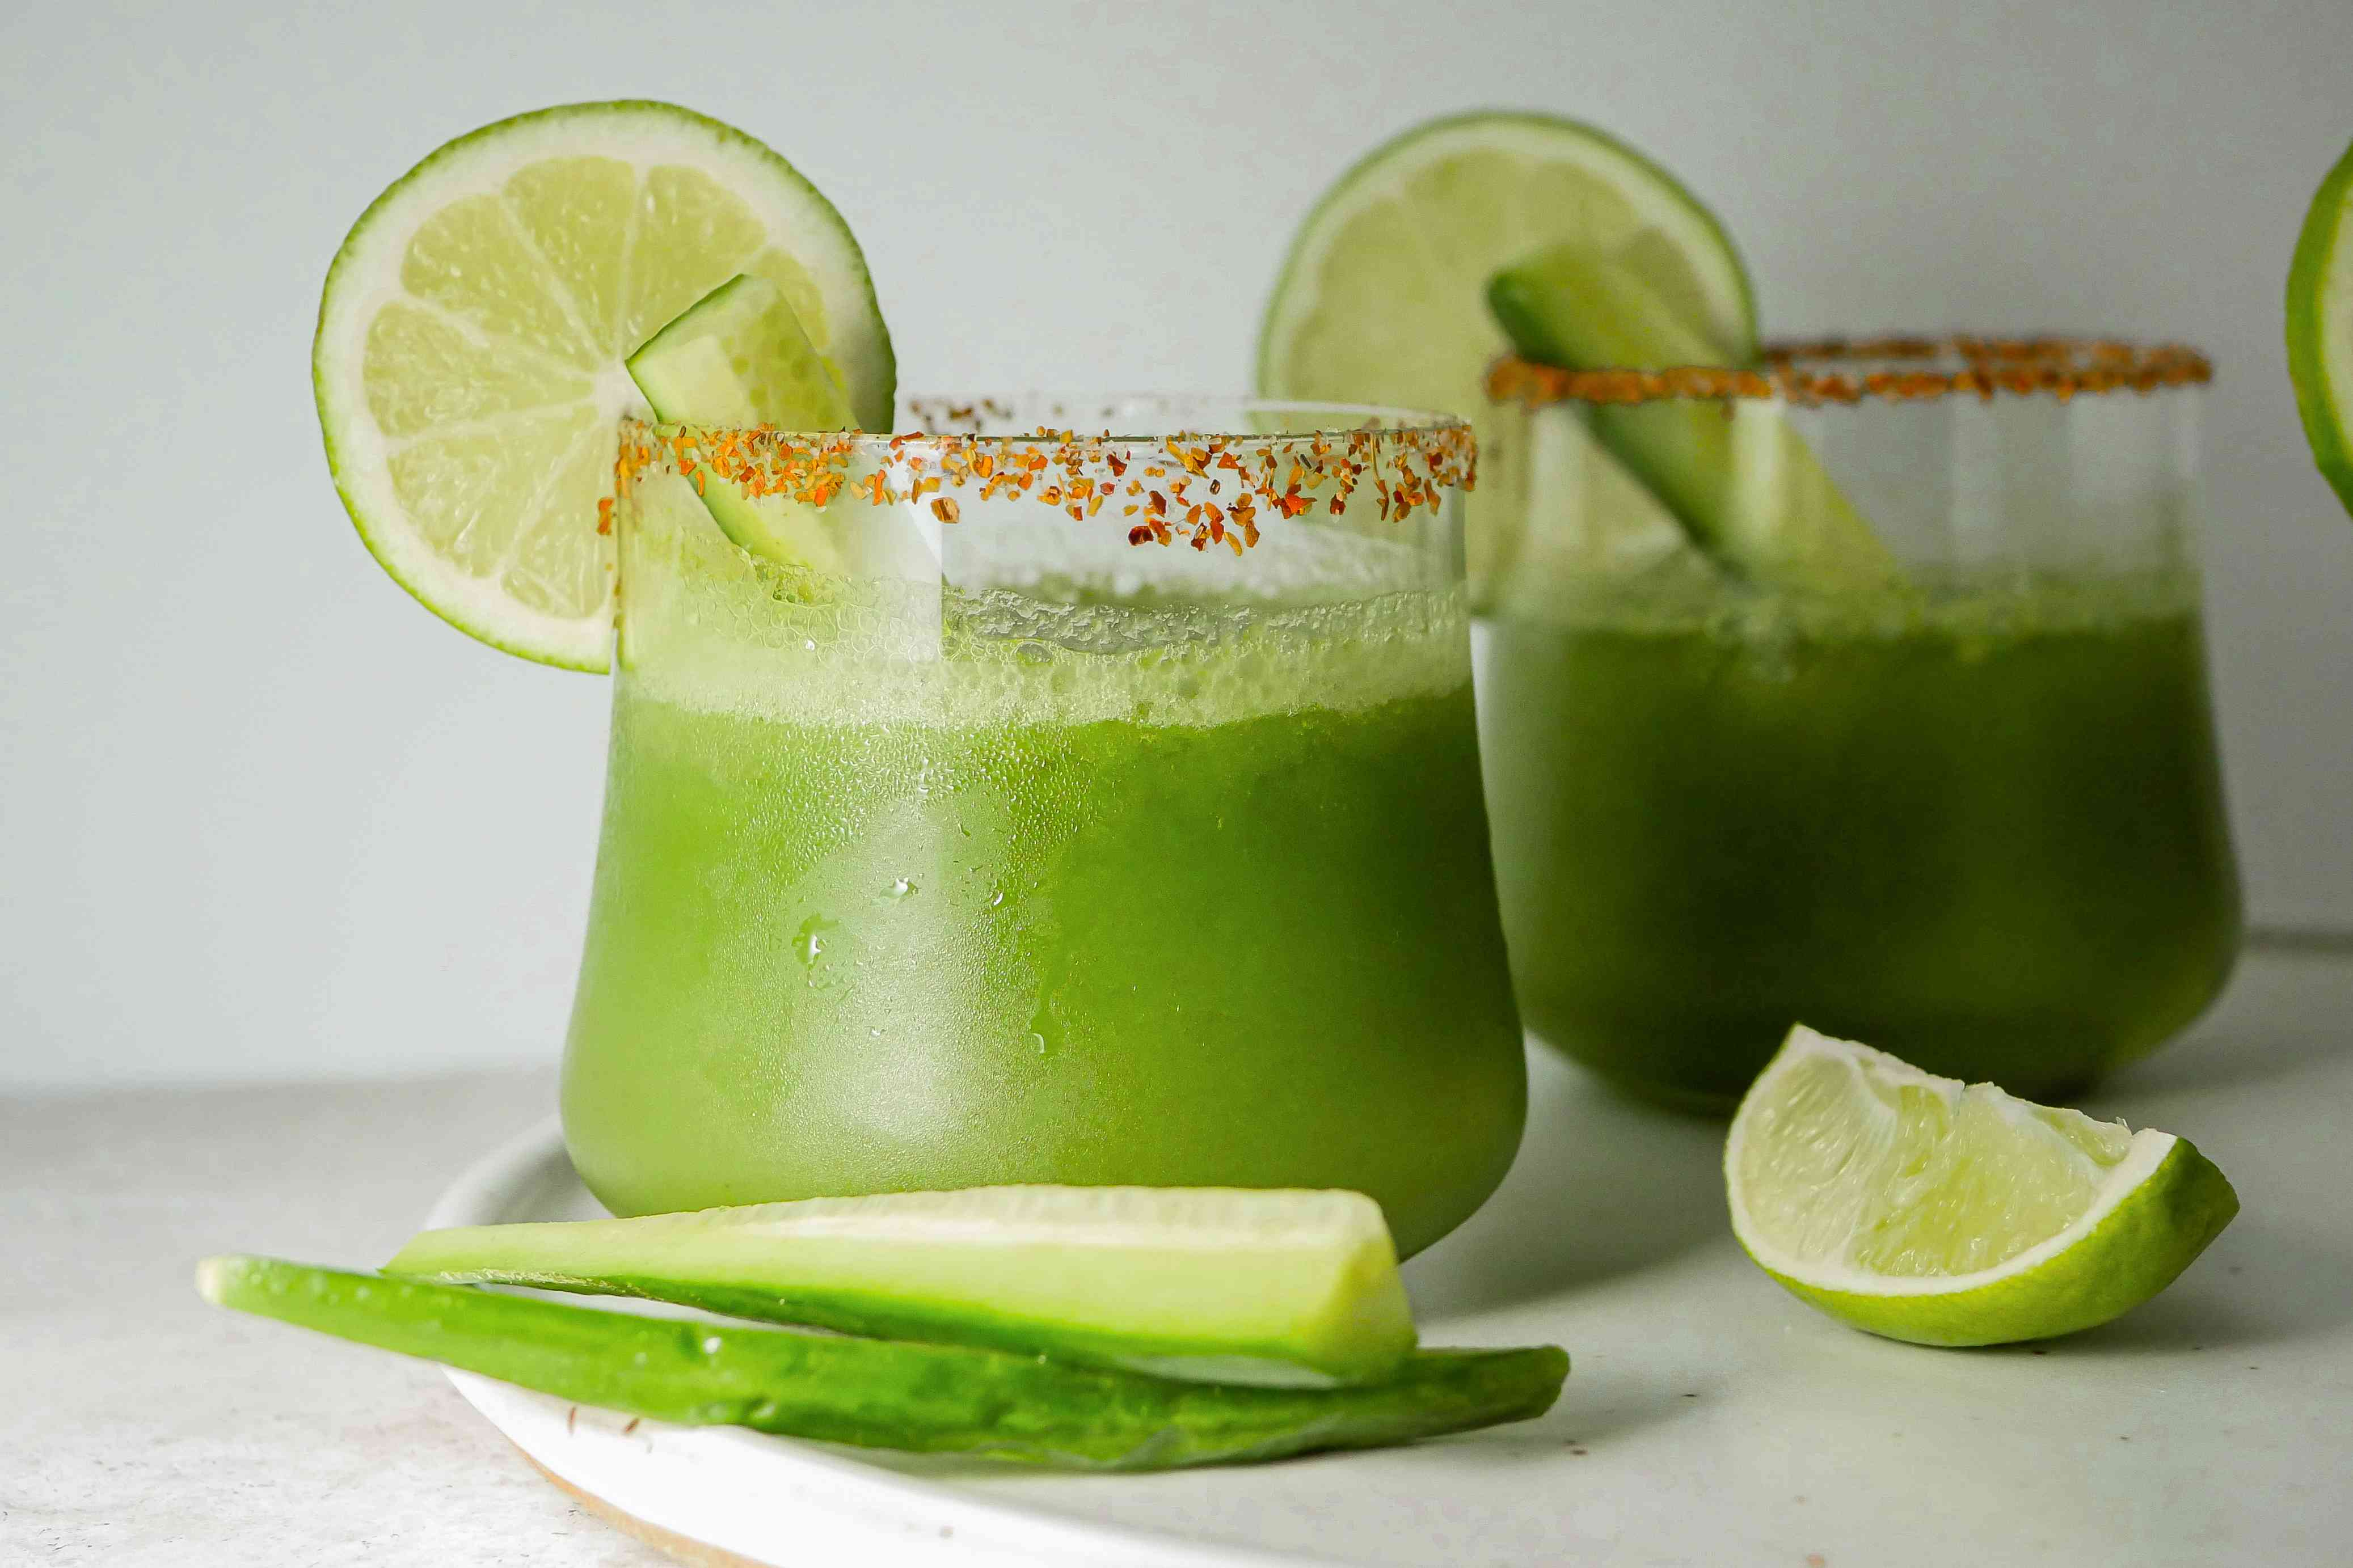 Two glasses of pitcher cucumber margaritas garnished with lime and cucumber.